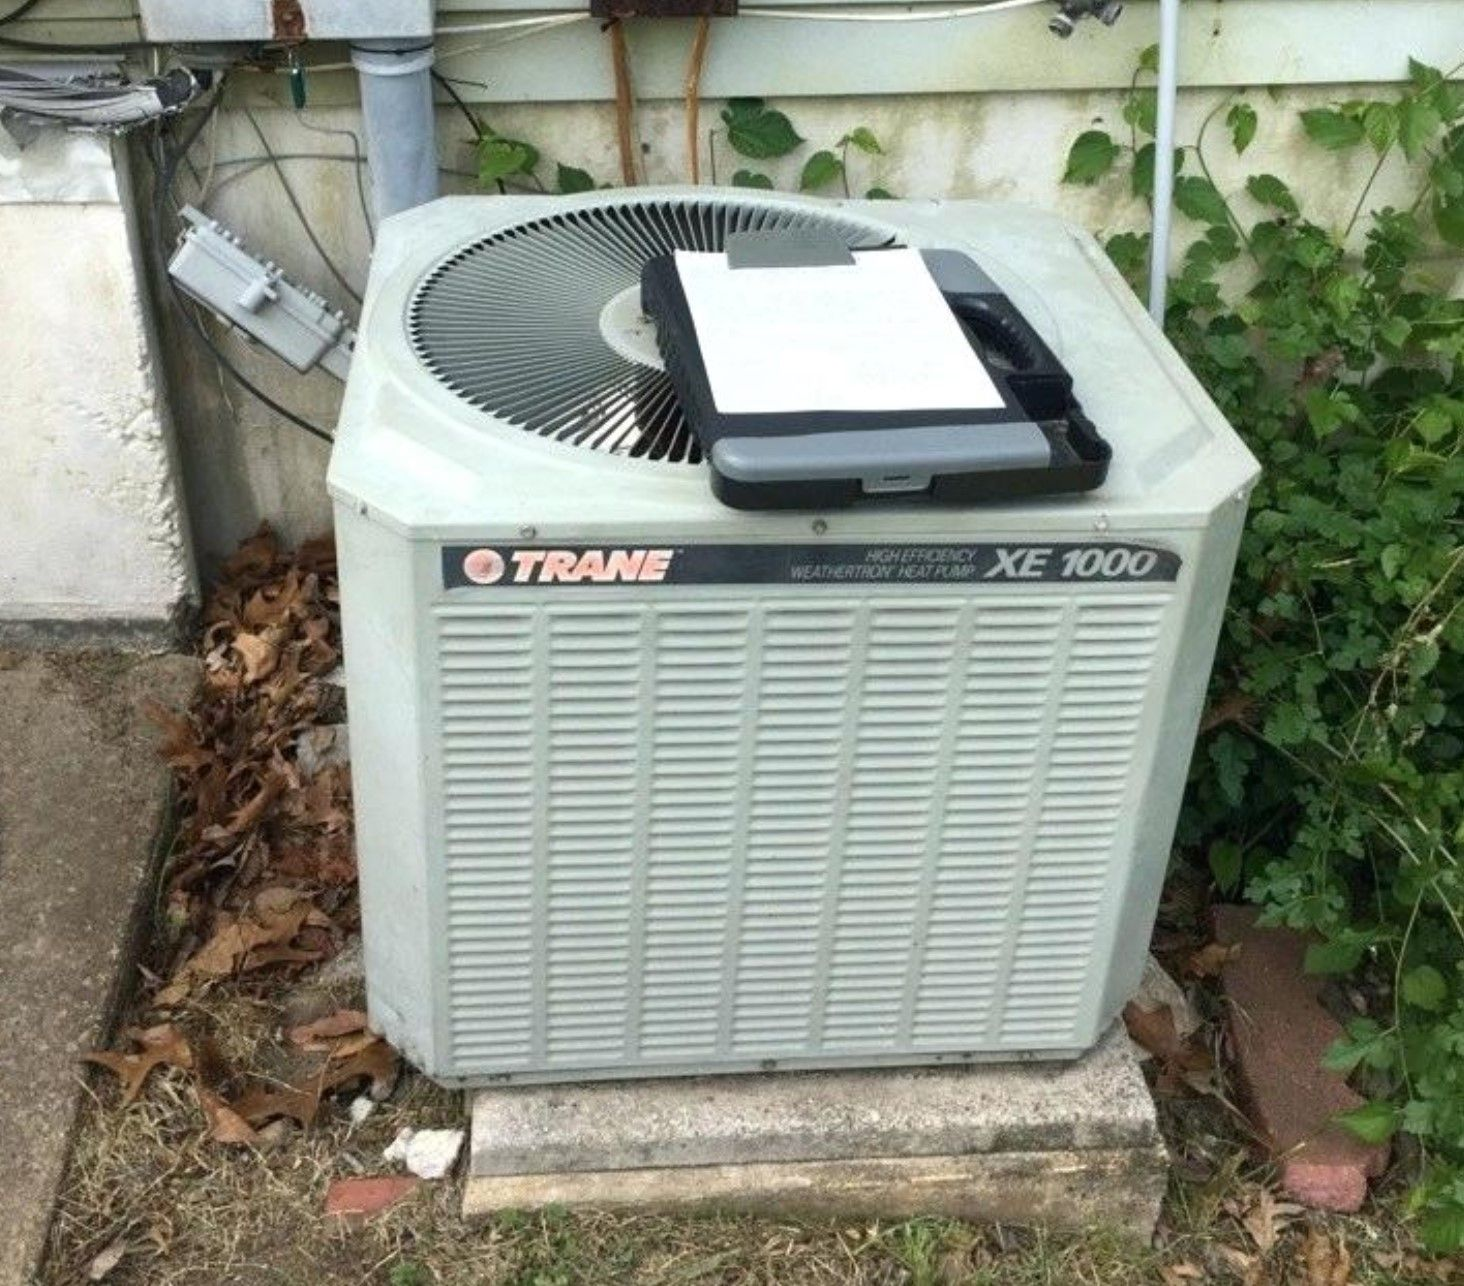 Trane Xe1000 Specifications Reviews Trane Outdoor Air Conditioner Heat Pump